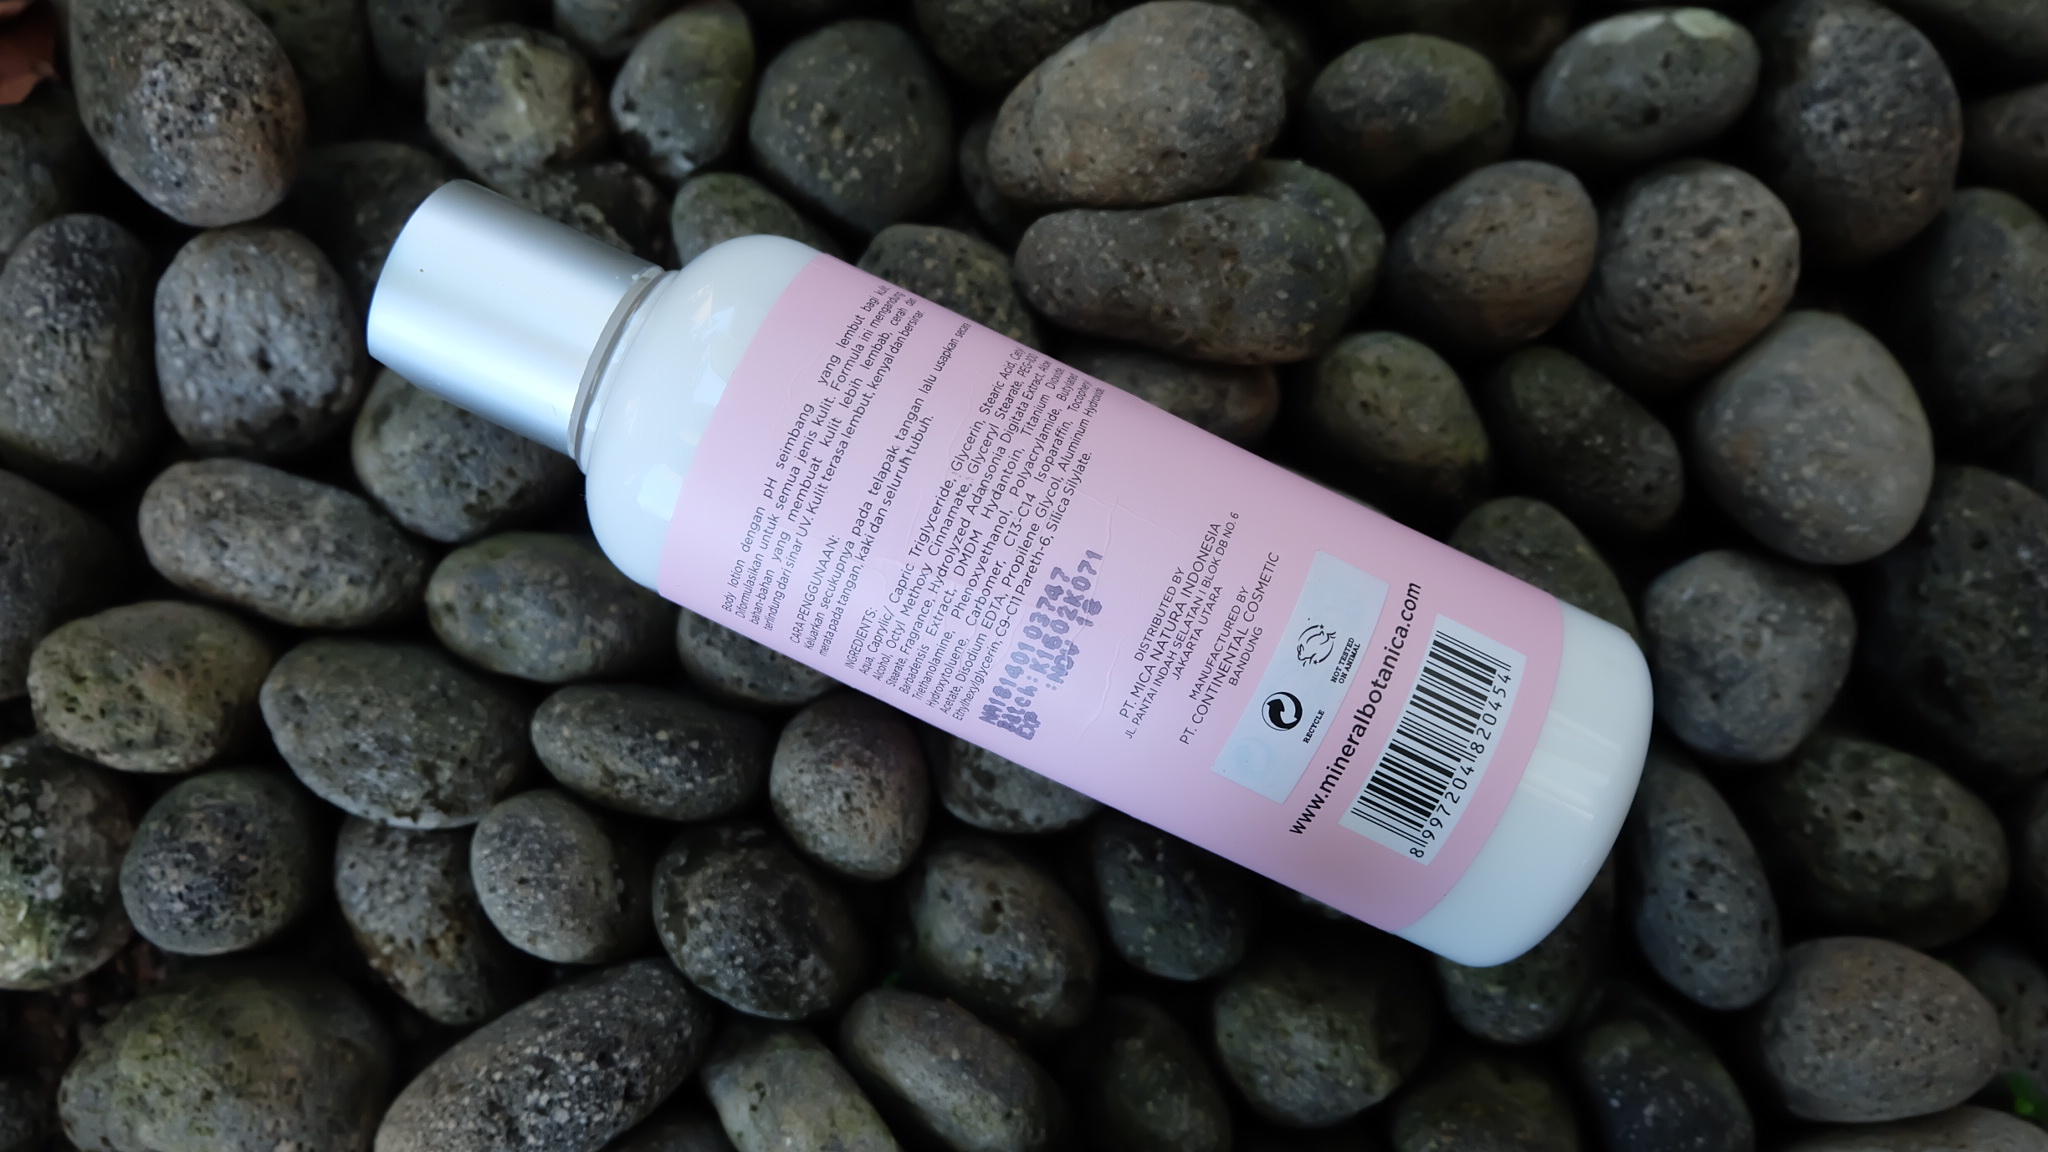 Review Mineral Botanica Body Lotion Floral